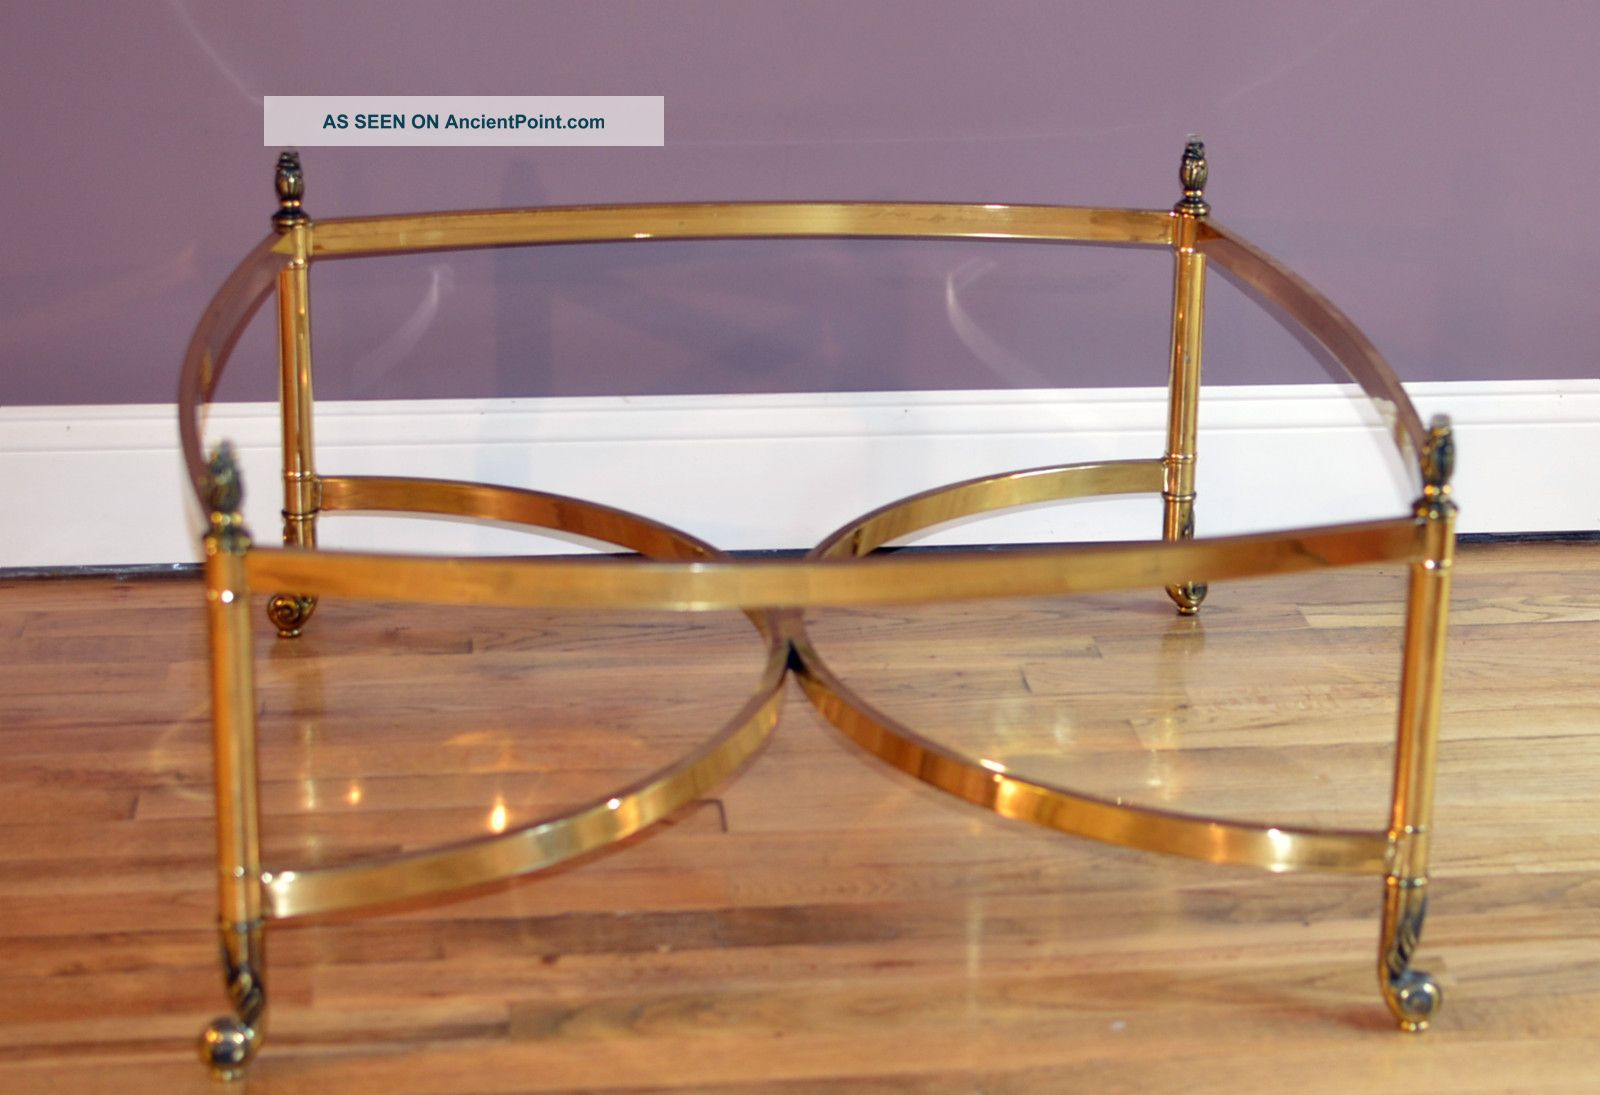 Brass Coffee Table Hollywood Regency Antique Modern Design Vintage Glass Top 1900-1950 photo